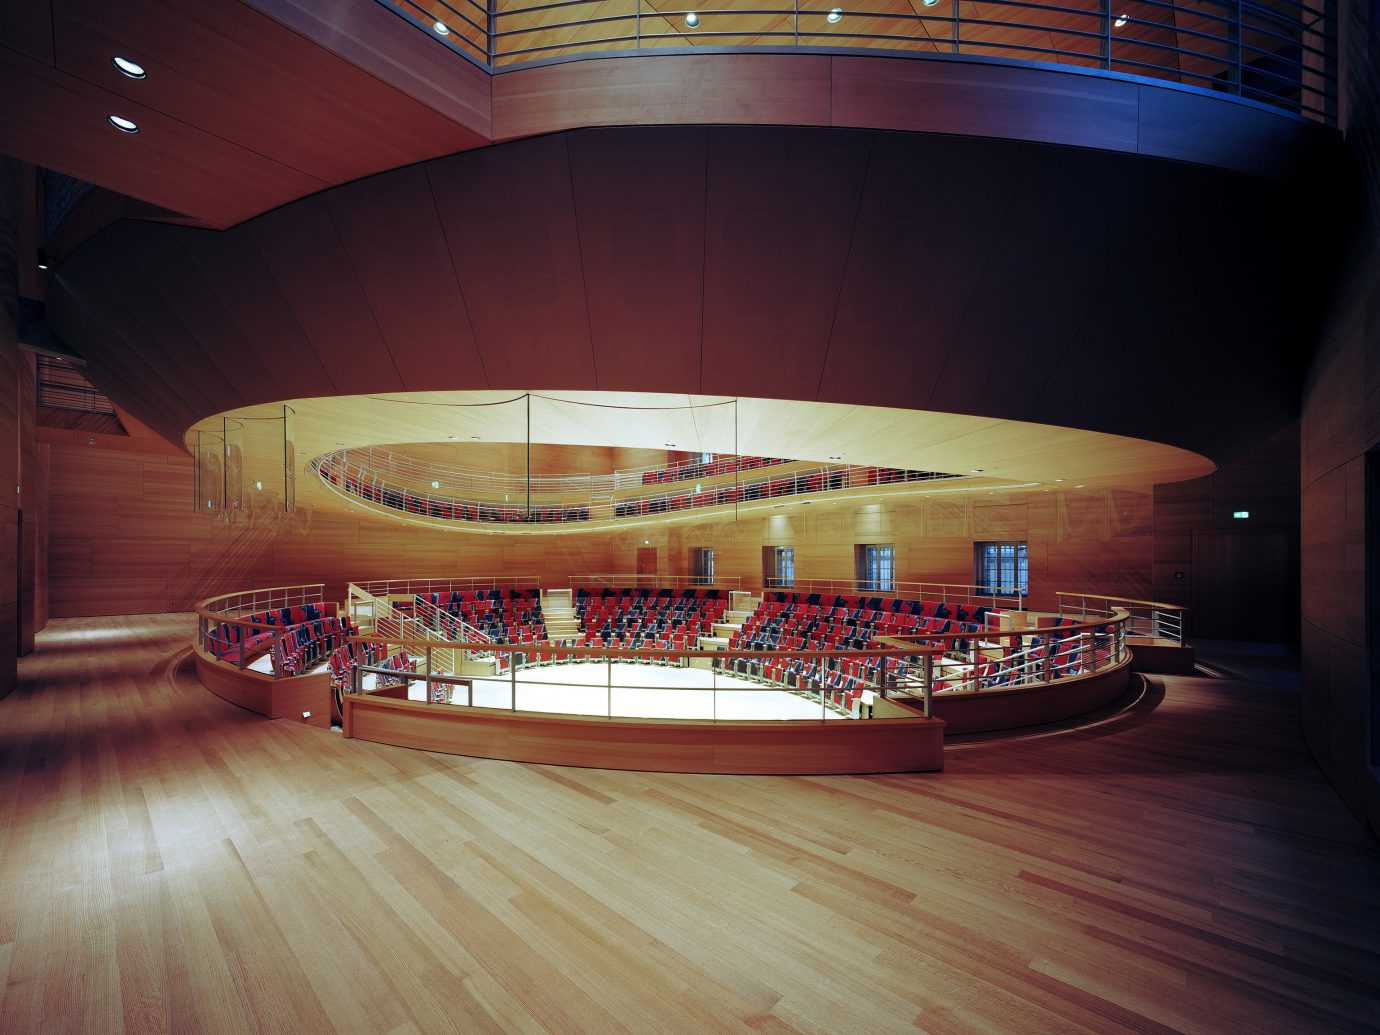 Trip Ideas floor indoor auditorium performing arts center concert hall building Architecture structure theatre ceiling lighting interior design opera house wood wooden daylighting convention center